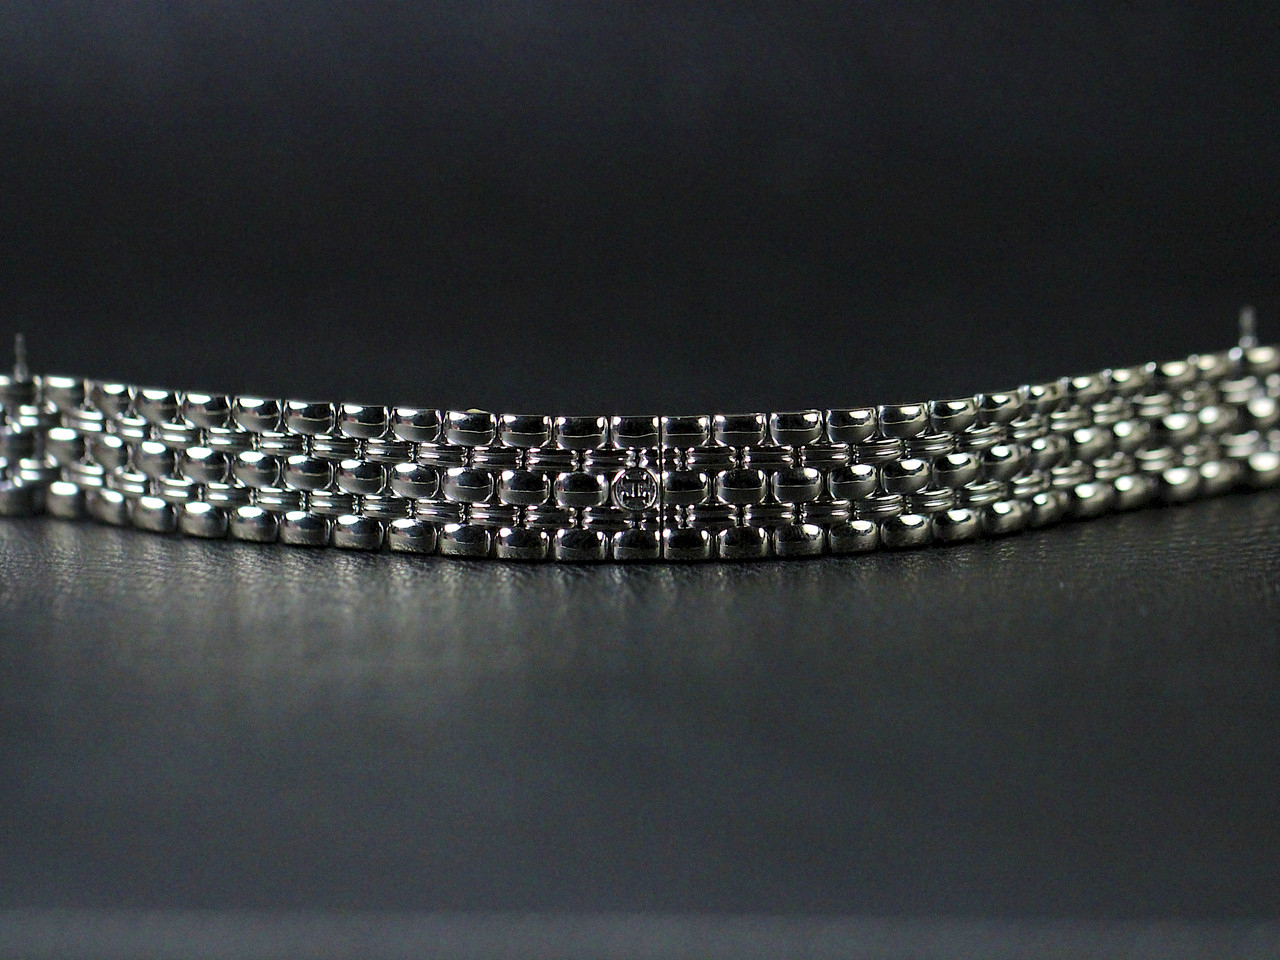 White Gold Bracelet - Hermes Watch - Cape Cod White Gold with Diamonds, Pre-Owned, www.Legendoftime.com - Chicago Watch Center